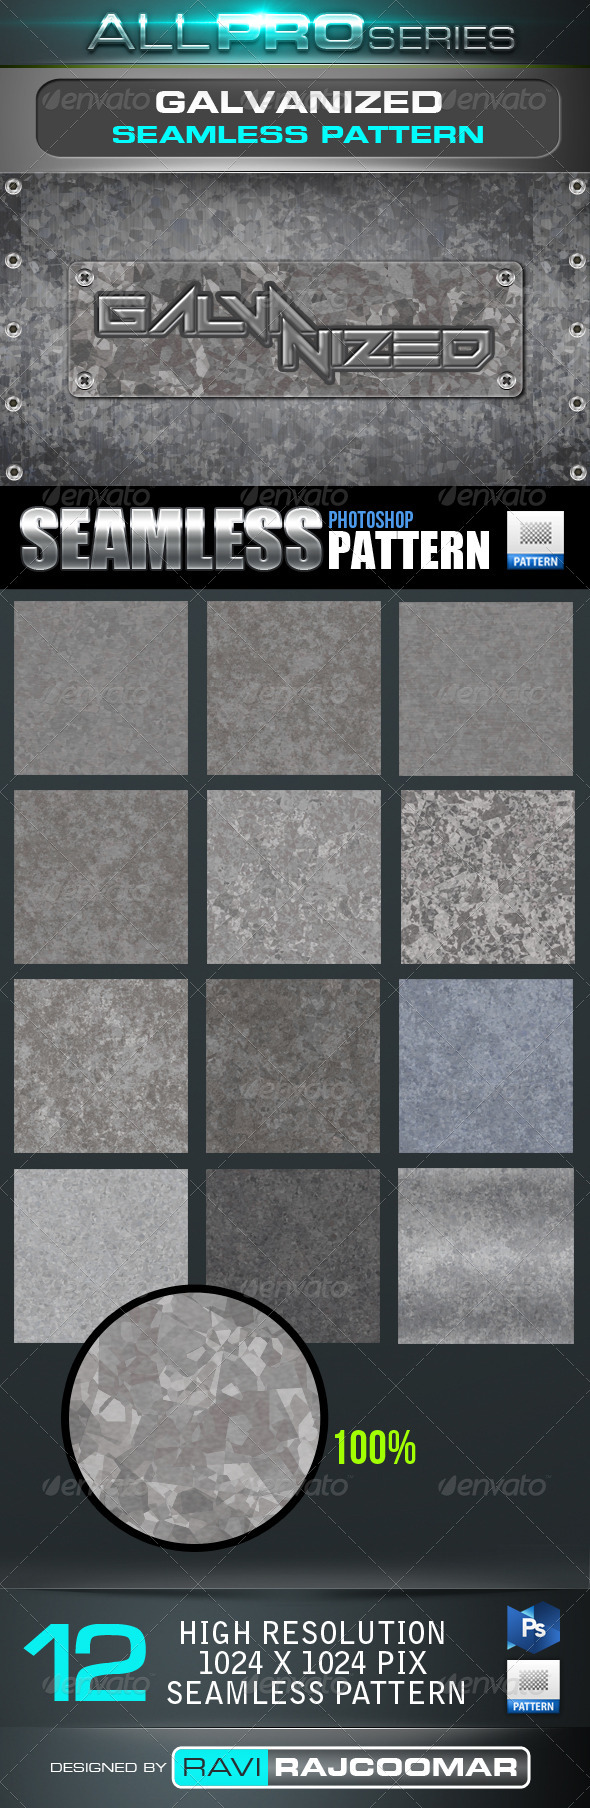 GraphicRiver Galvanized Seamless-Tileable Pattern 4027416